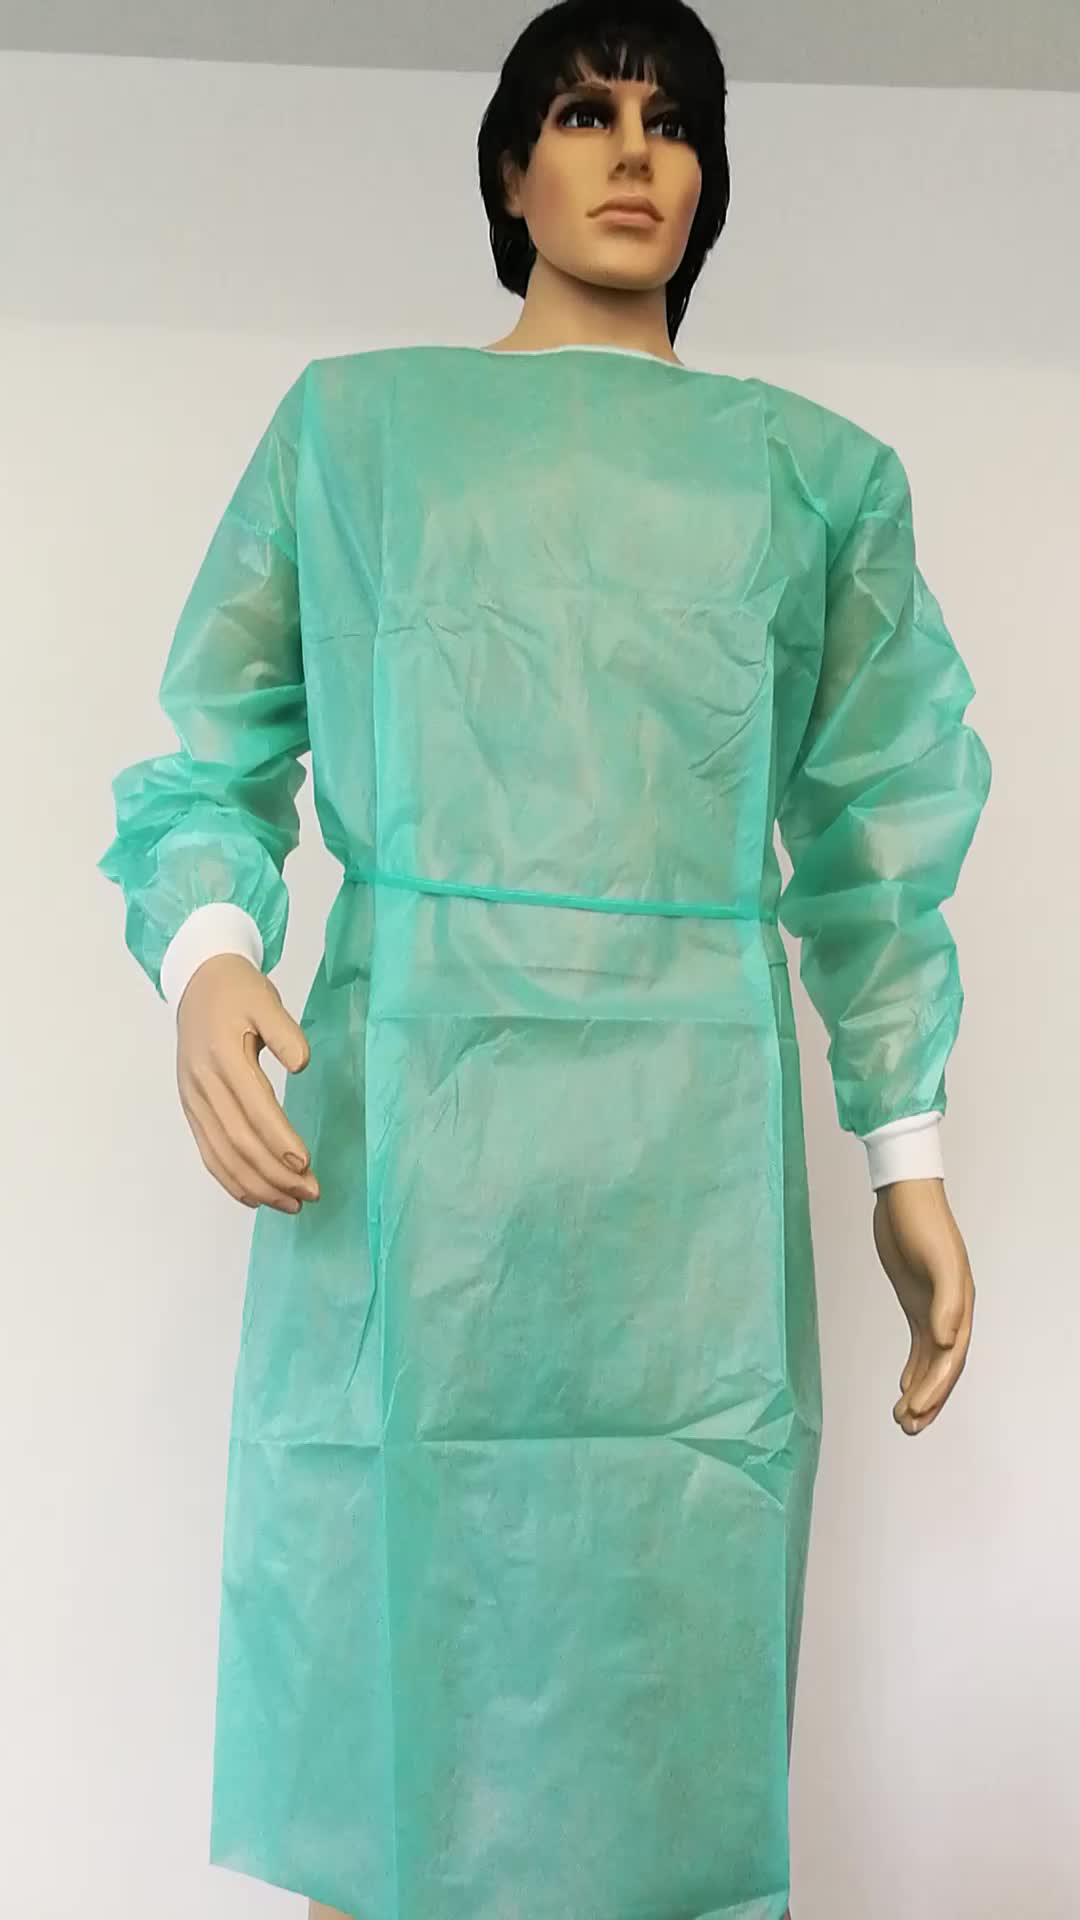 Disposable Surgical Drapes And Gowns With Green Color - Buy Sterile ...